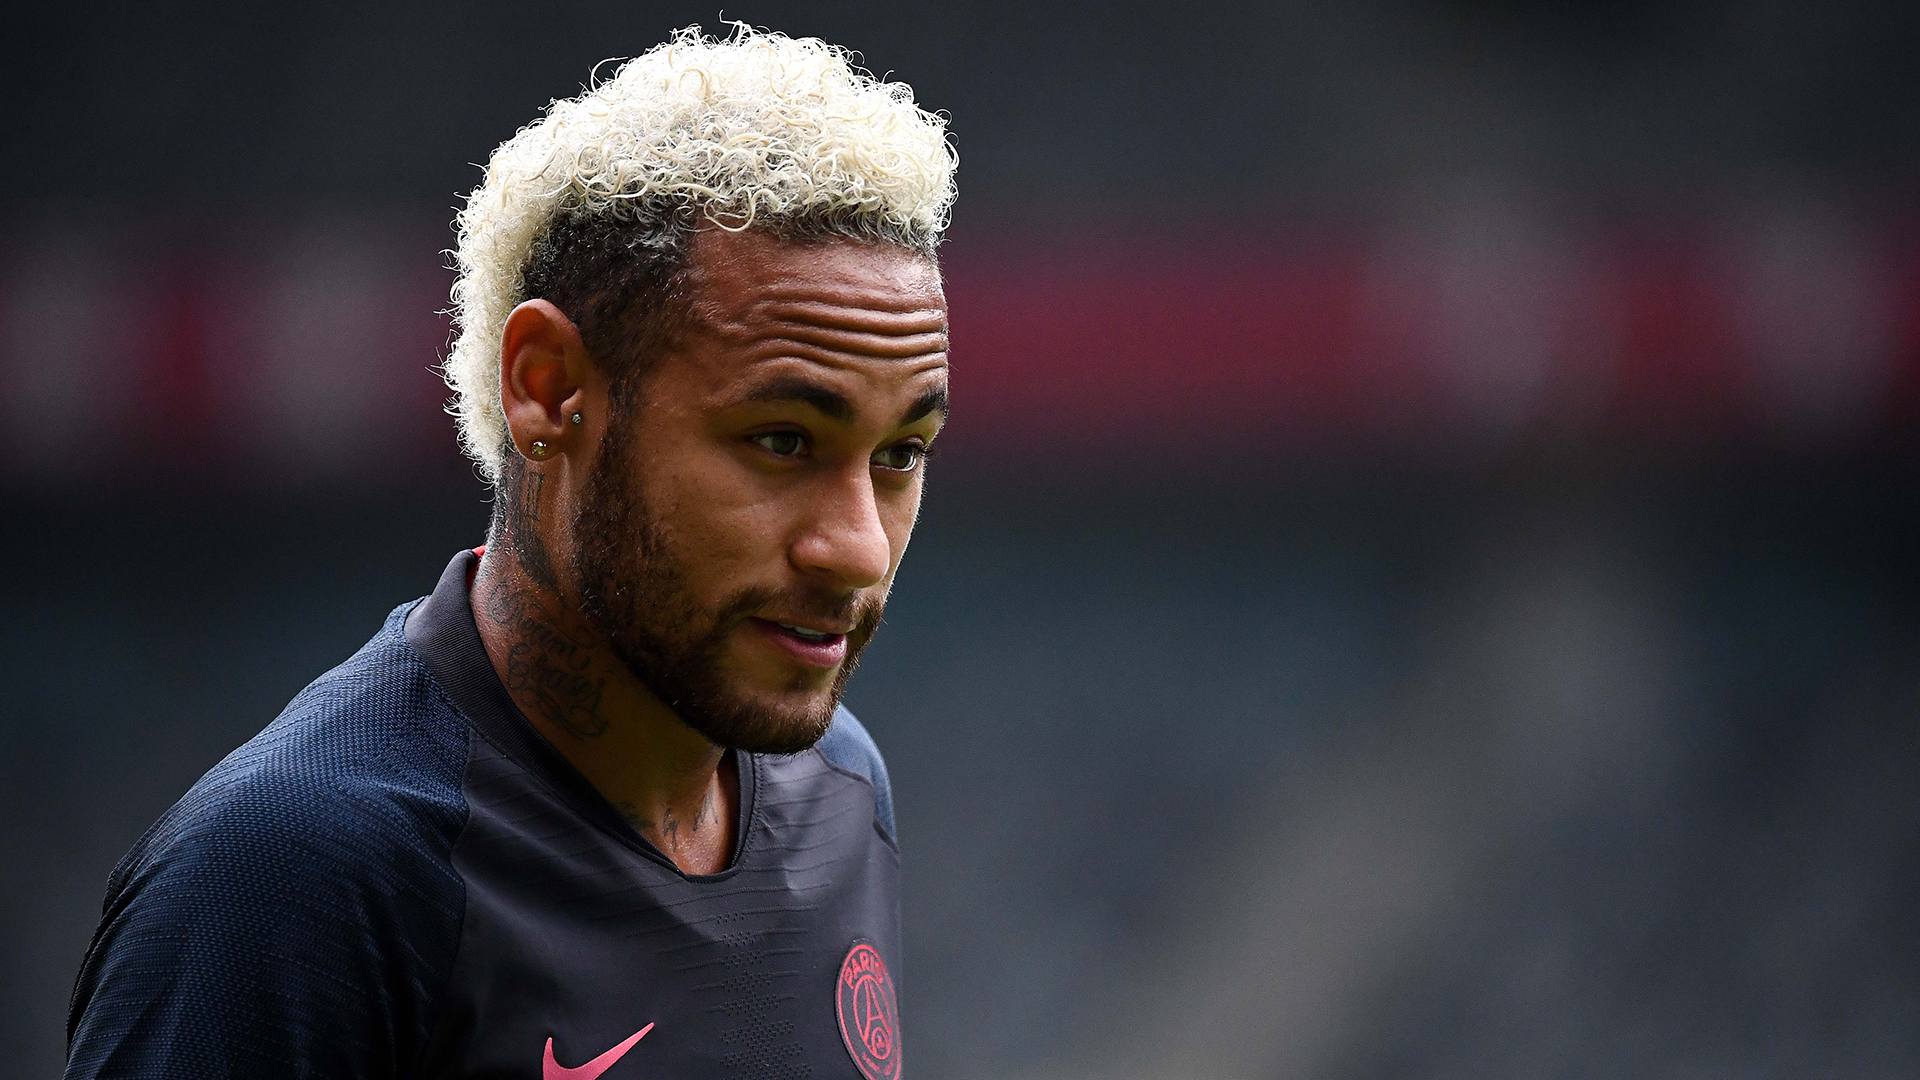 'Paris will forgive Neymar if he can deliver' - French capital's mayor calls on wantaway star to knuckle down